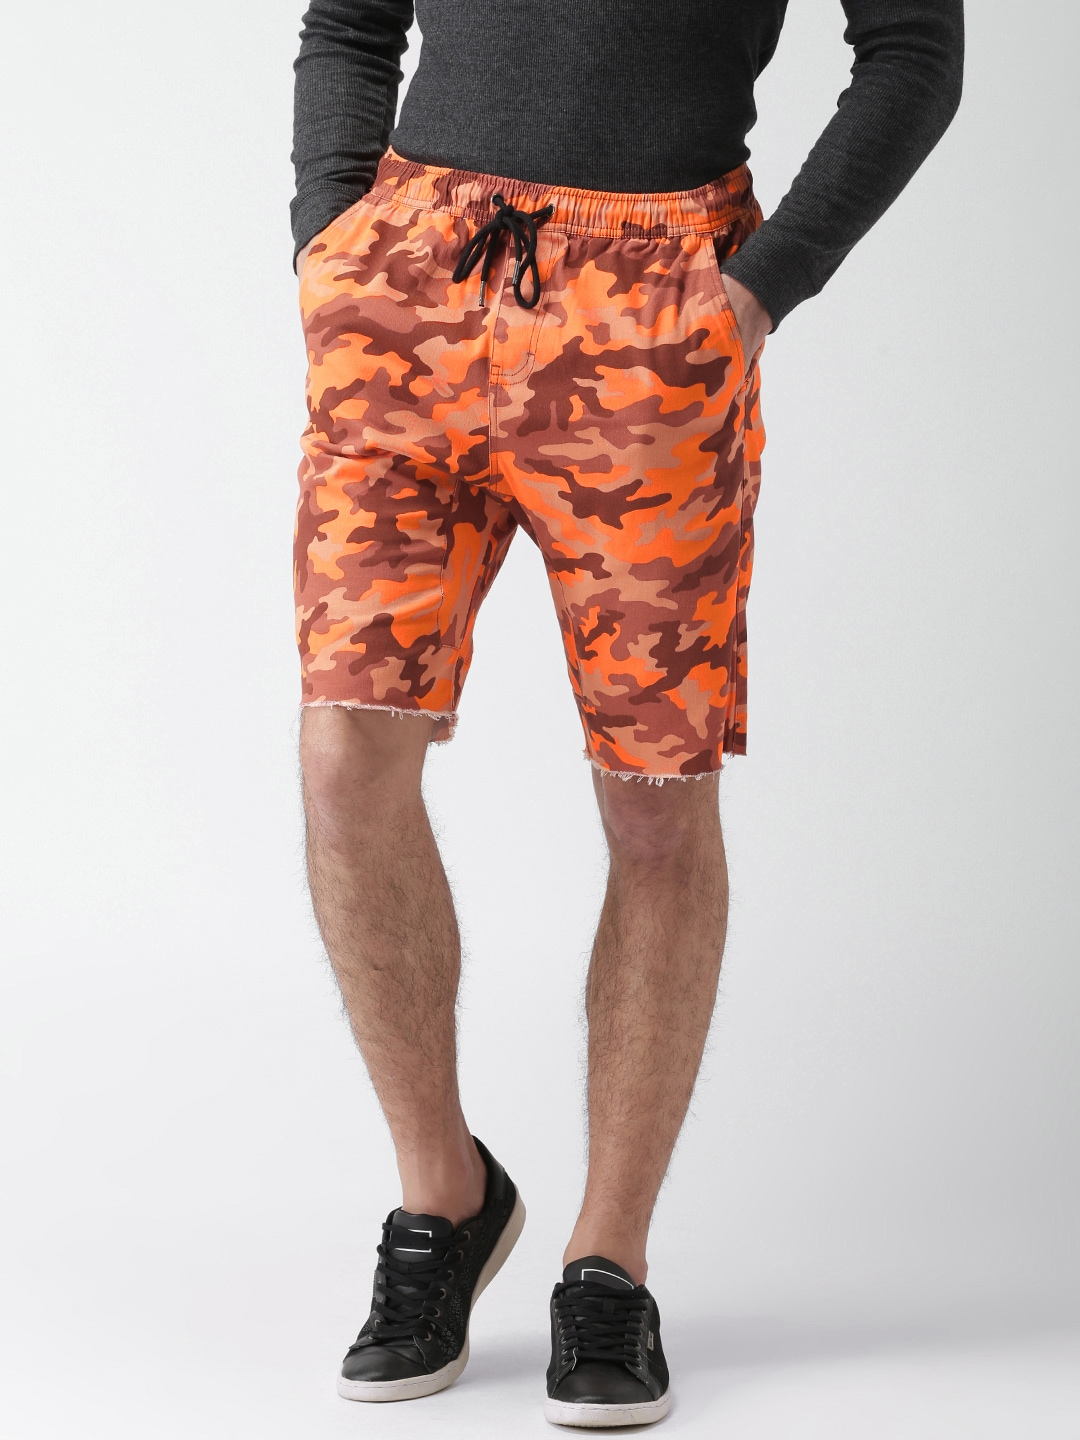 Men Camouflage Shorts S - Buy Men Camouflage Shorts S online in India 53c2b17e010